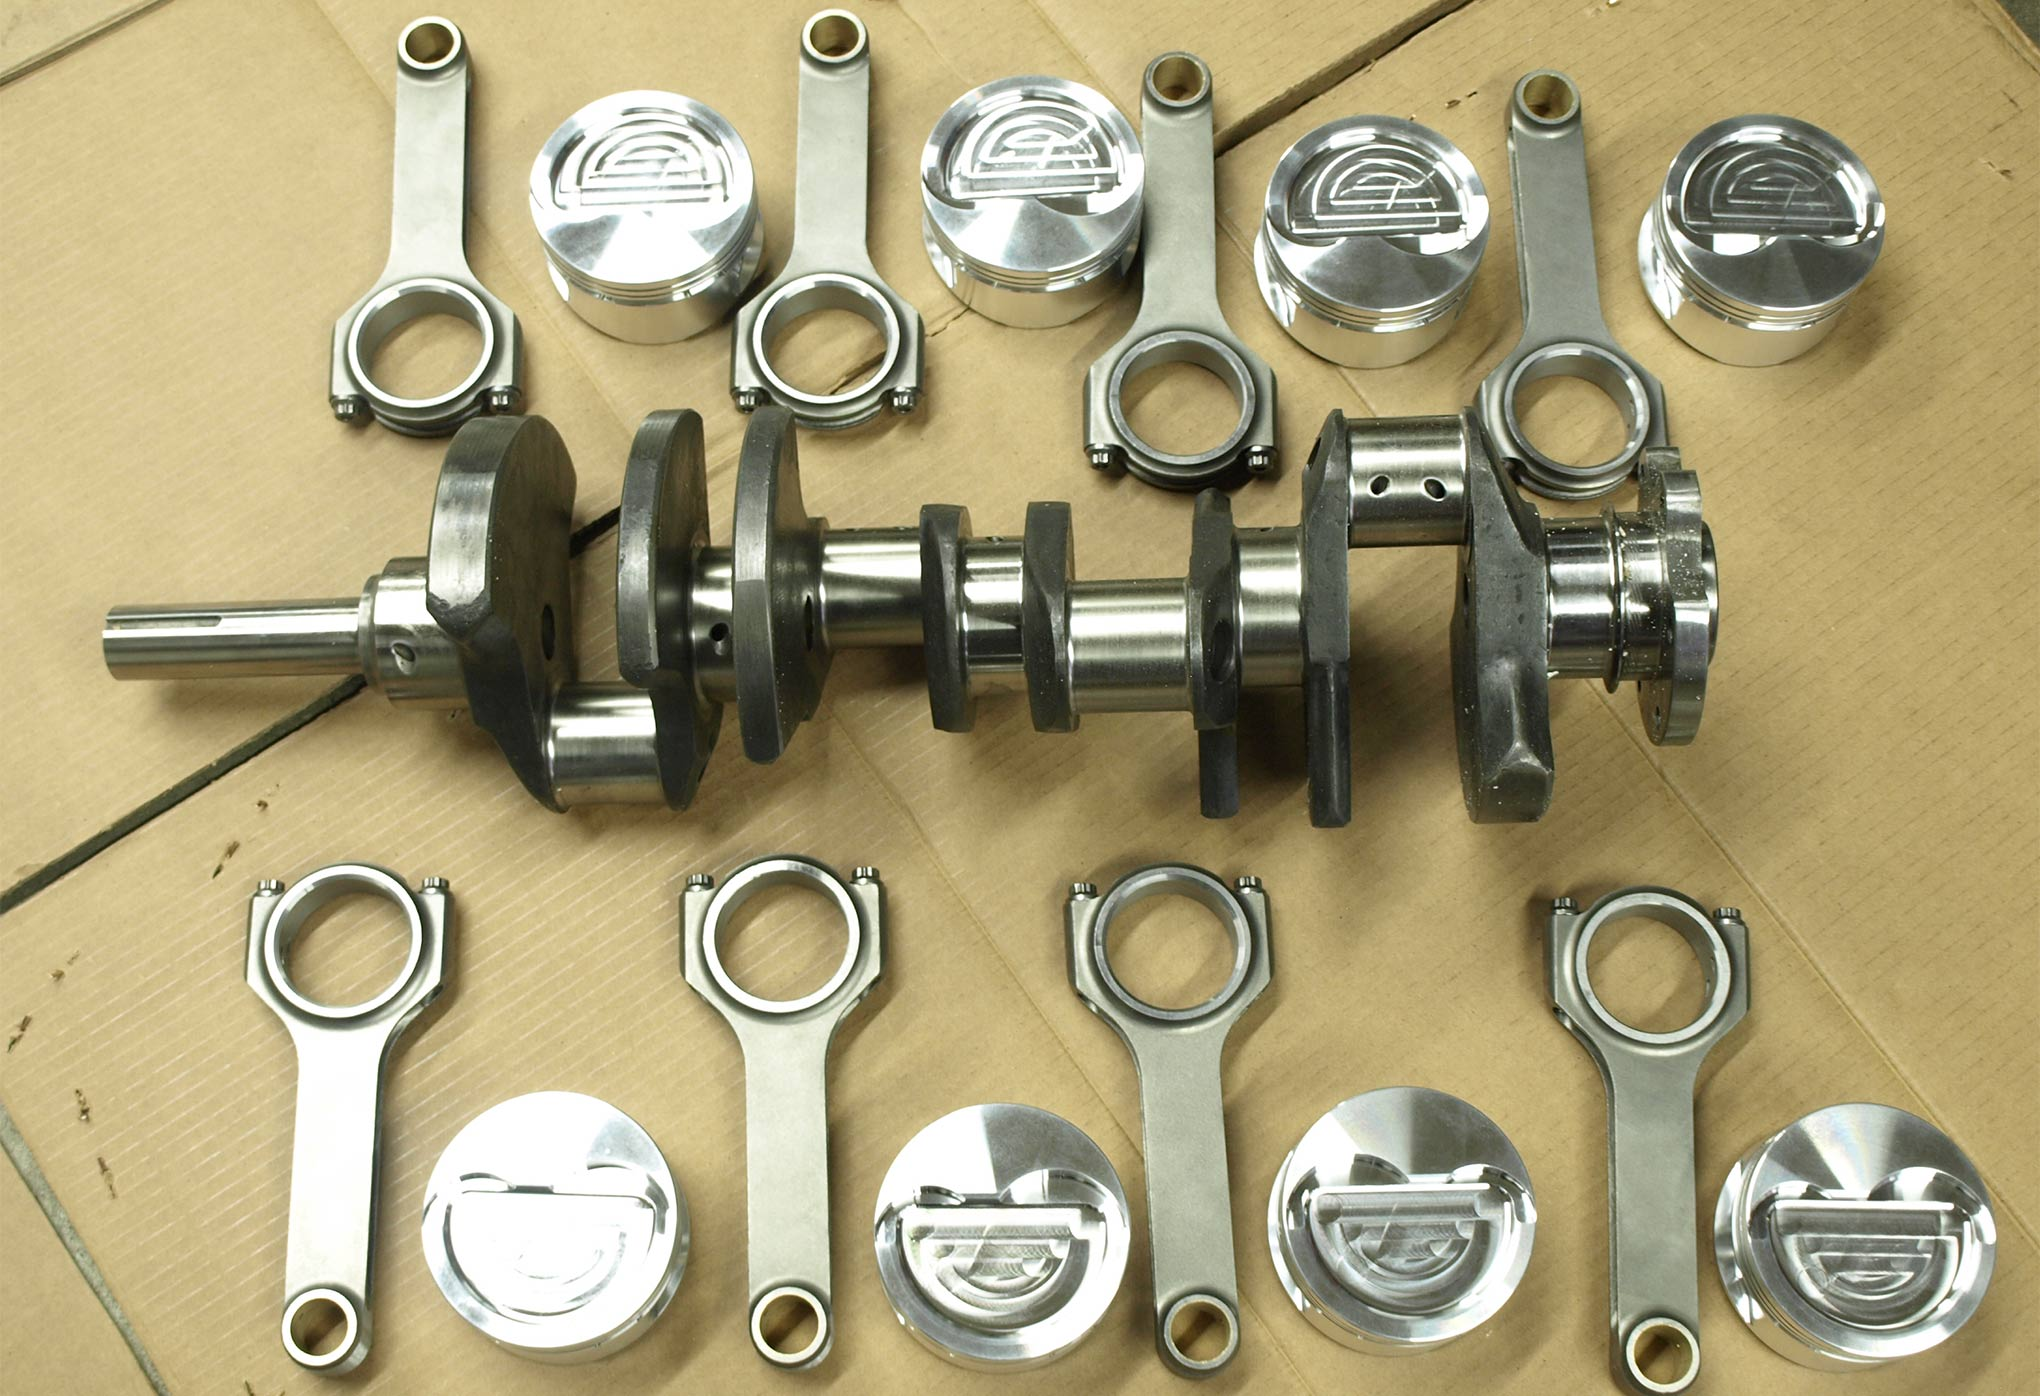 Working with the 0.050 cylinder overbore, the stock 3.78 stroke Ford crank gives way to a 4.250 inch 4340 forged steel replacement from Scat (PN 4FE200) that weighs 63.6 pounds and is internally balanced. Scat also offers a cast-iron version (PN 9FE200, 59.6 pounds) for penny-pinchers. Scat 6.700-inch rods and lightweight J&E forged pistons (521 grams each, PN 242931) complete the rotating assembly.